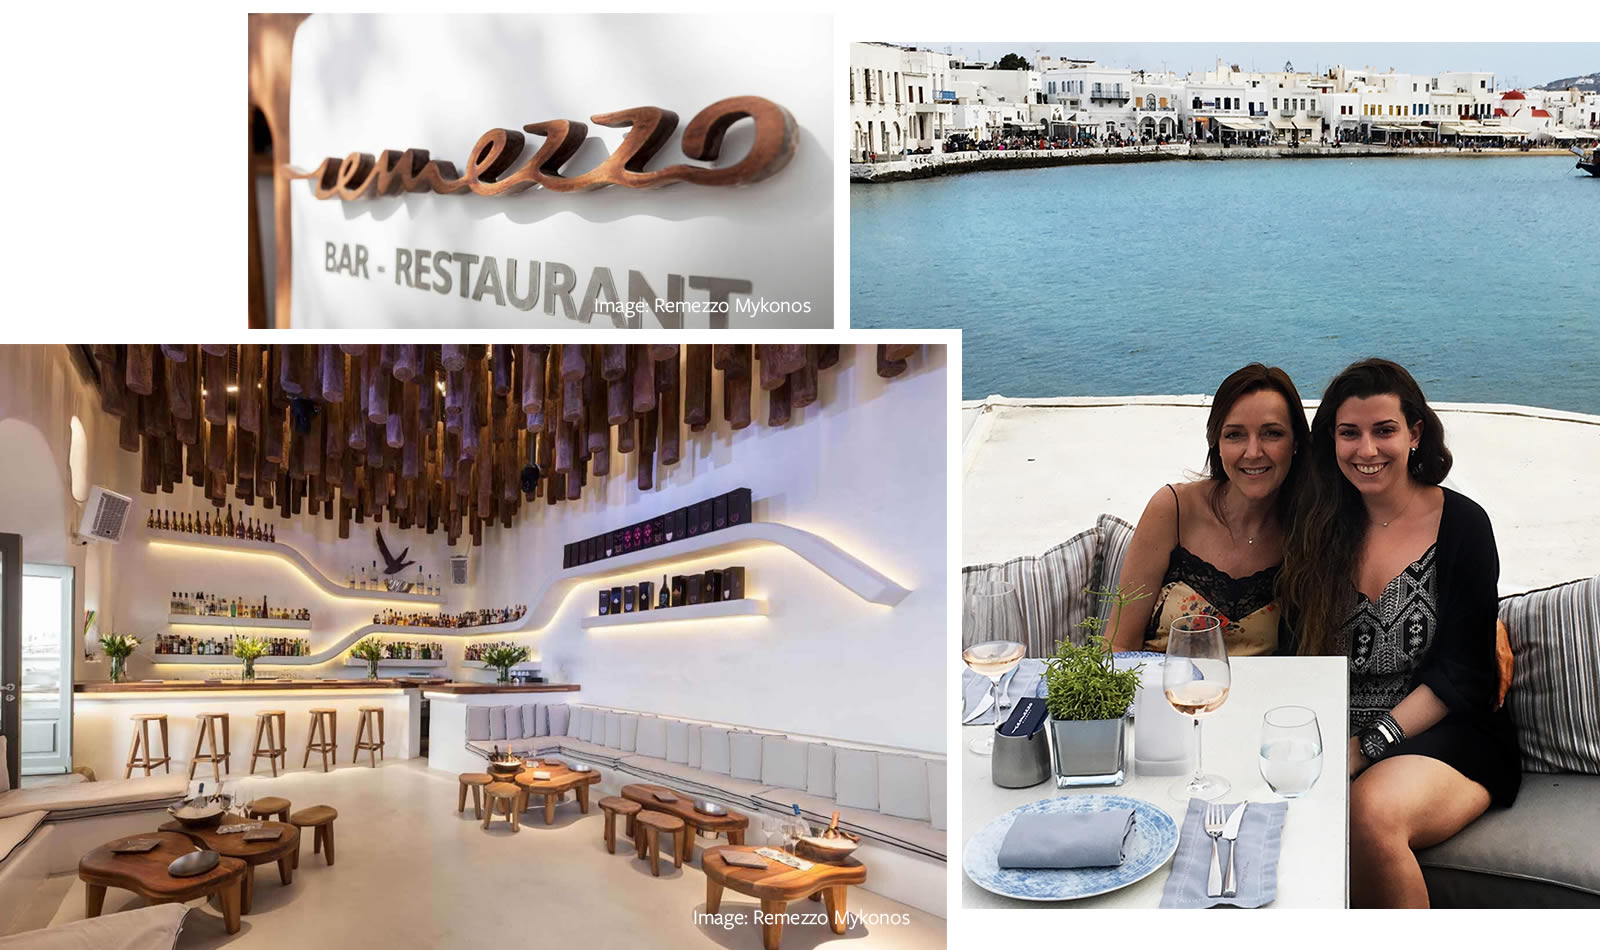 Ten days in Mykonos - Remezzo Bar Restaurant